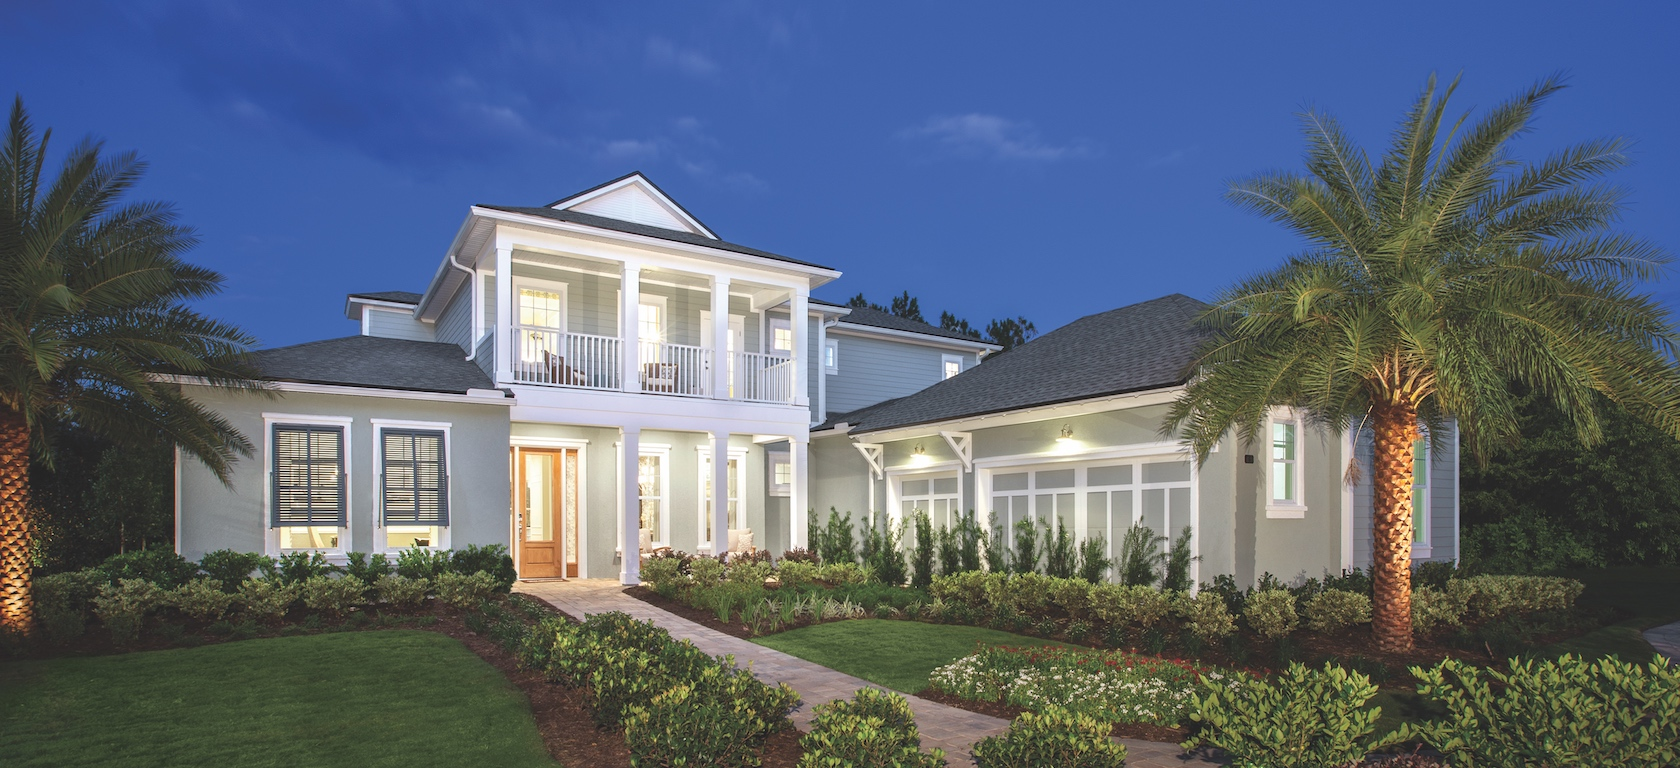 Toll Brothers Westbrook model in Coastal Oaks at Nocatee community